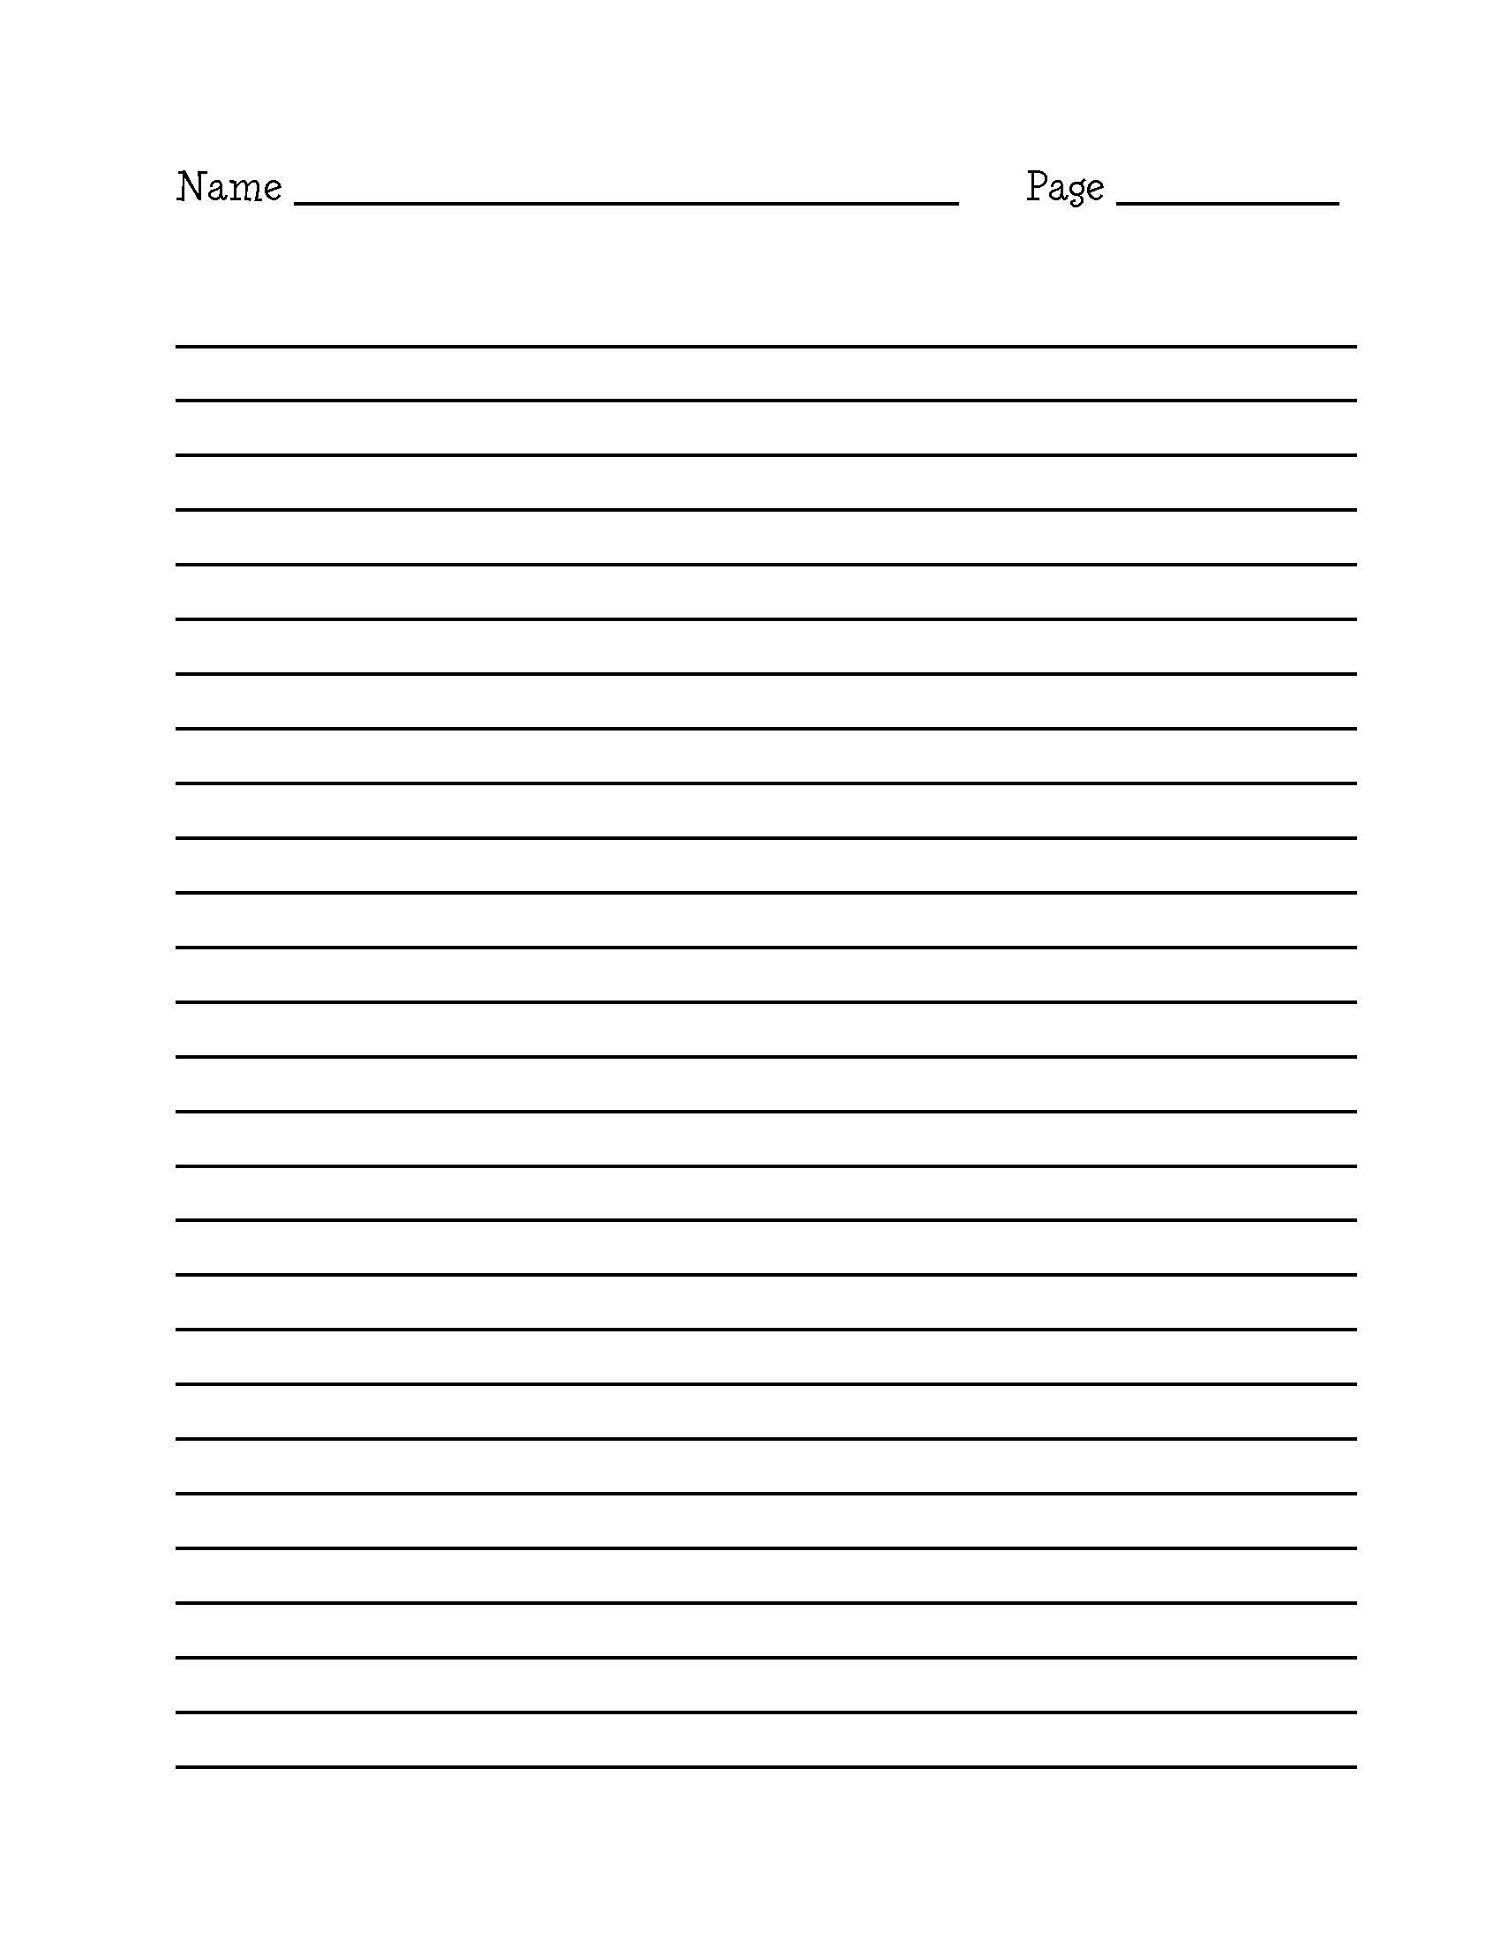 Exceptional Lined Paper For Writing For Cute Writing Paper | Dear Joya Regard To Lined Blank Paper